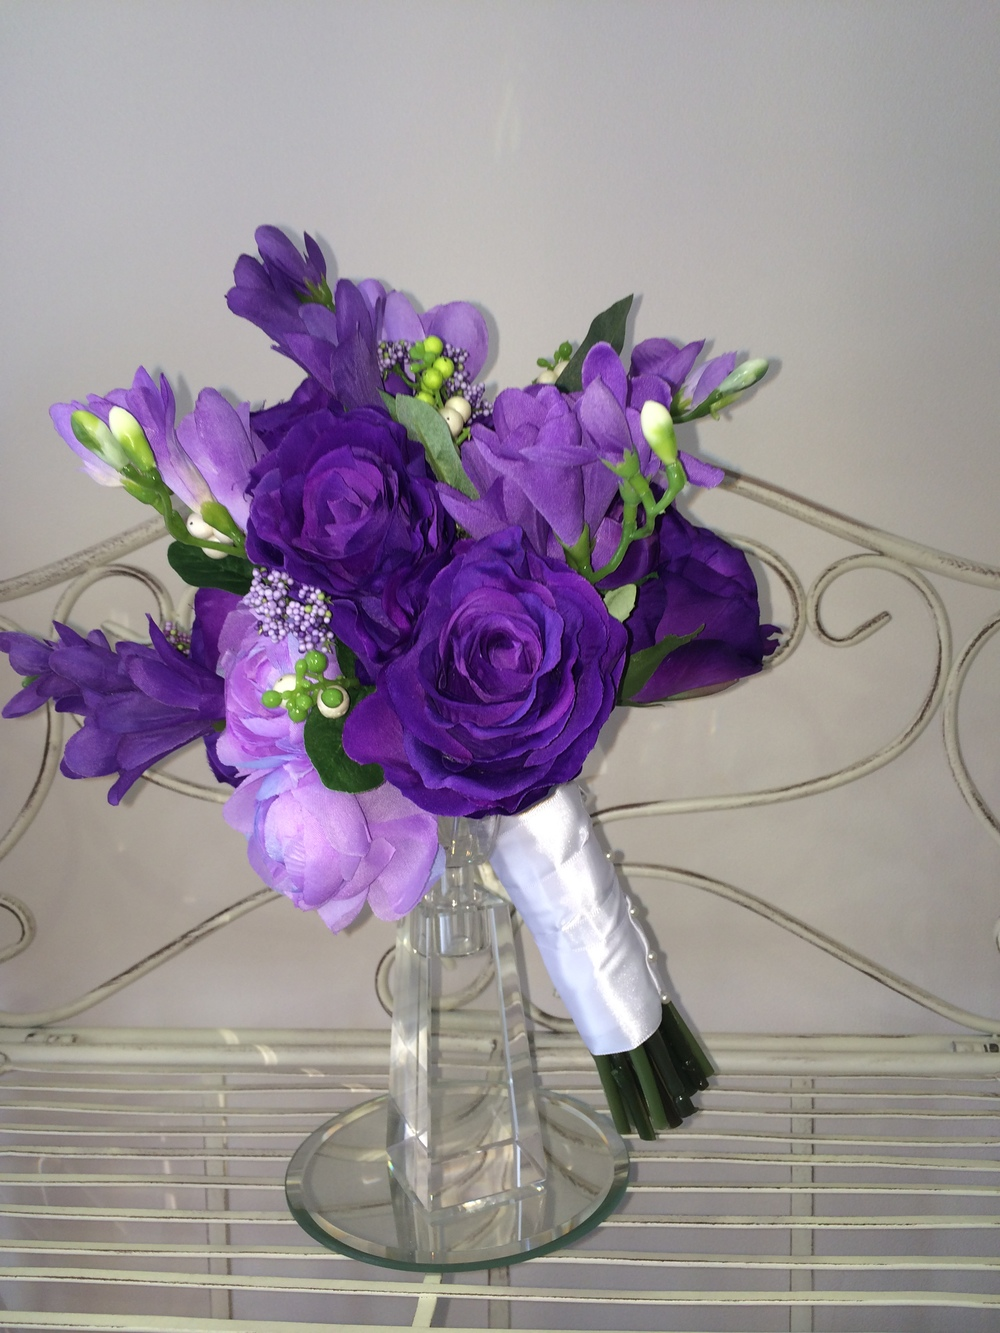 Brides Handtied Bouquet With Cadbury Purple Roses, Purple & Lilac Freesias With Lilac Hedgerow Berries